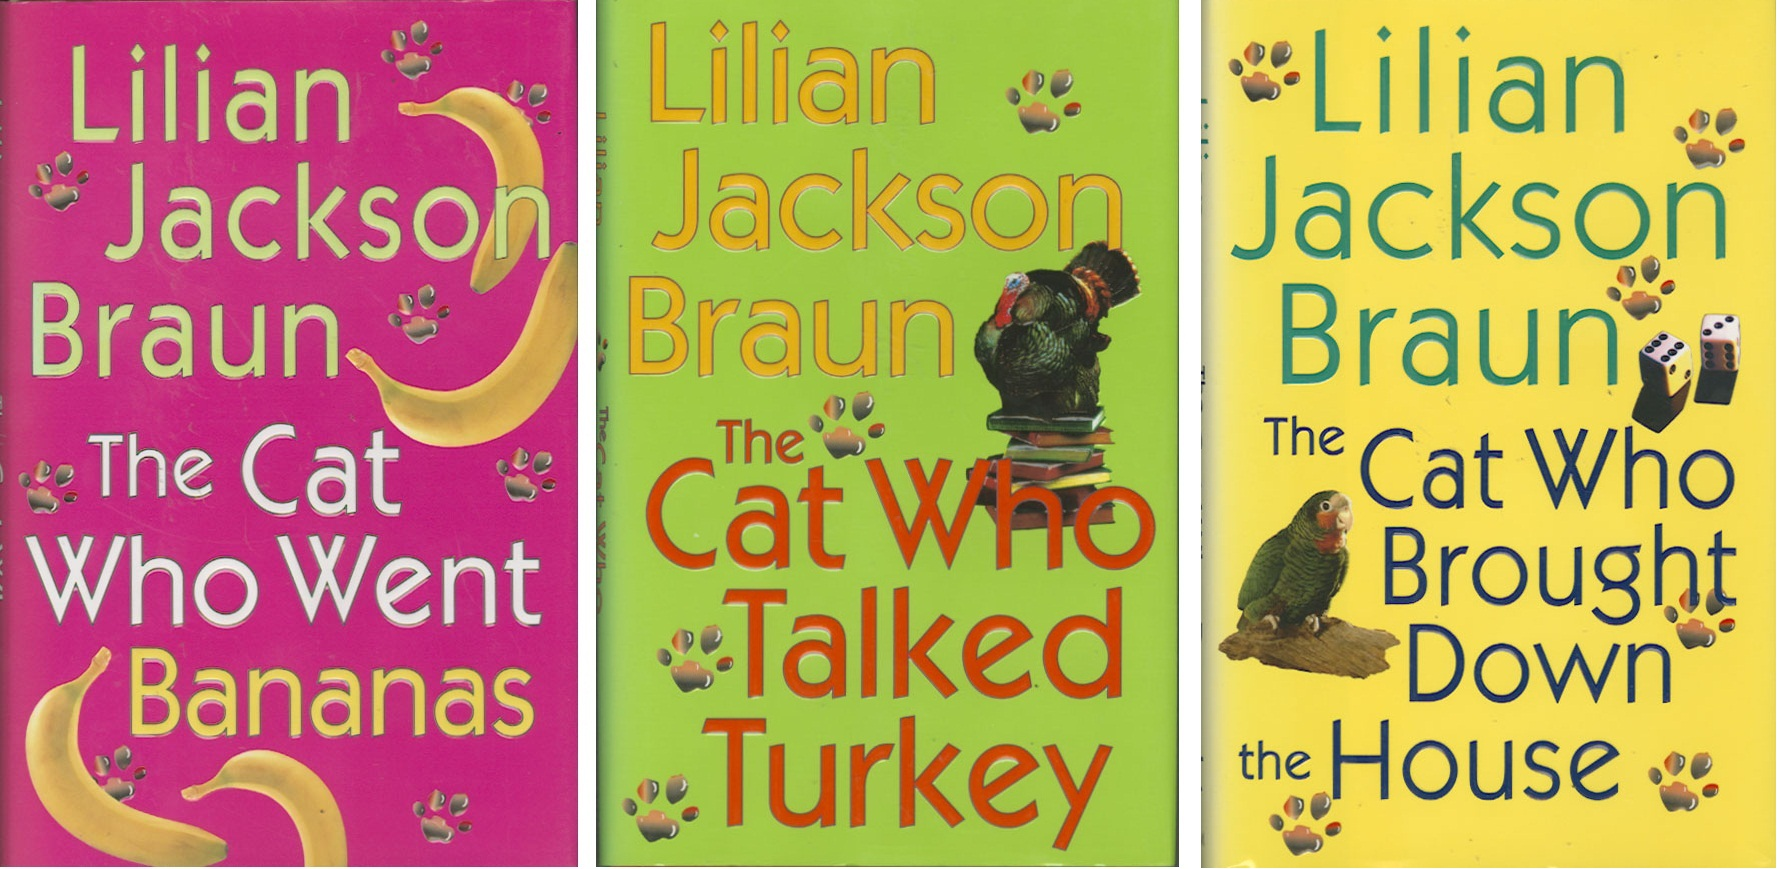 Lillian Braun books